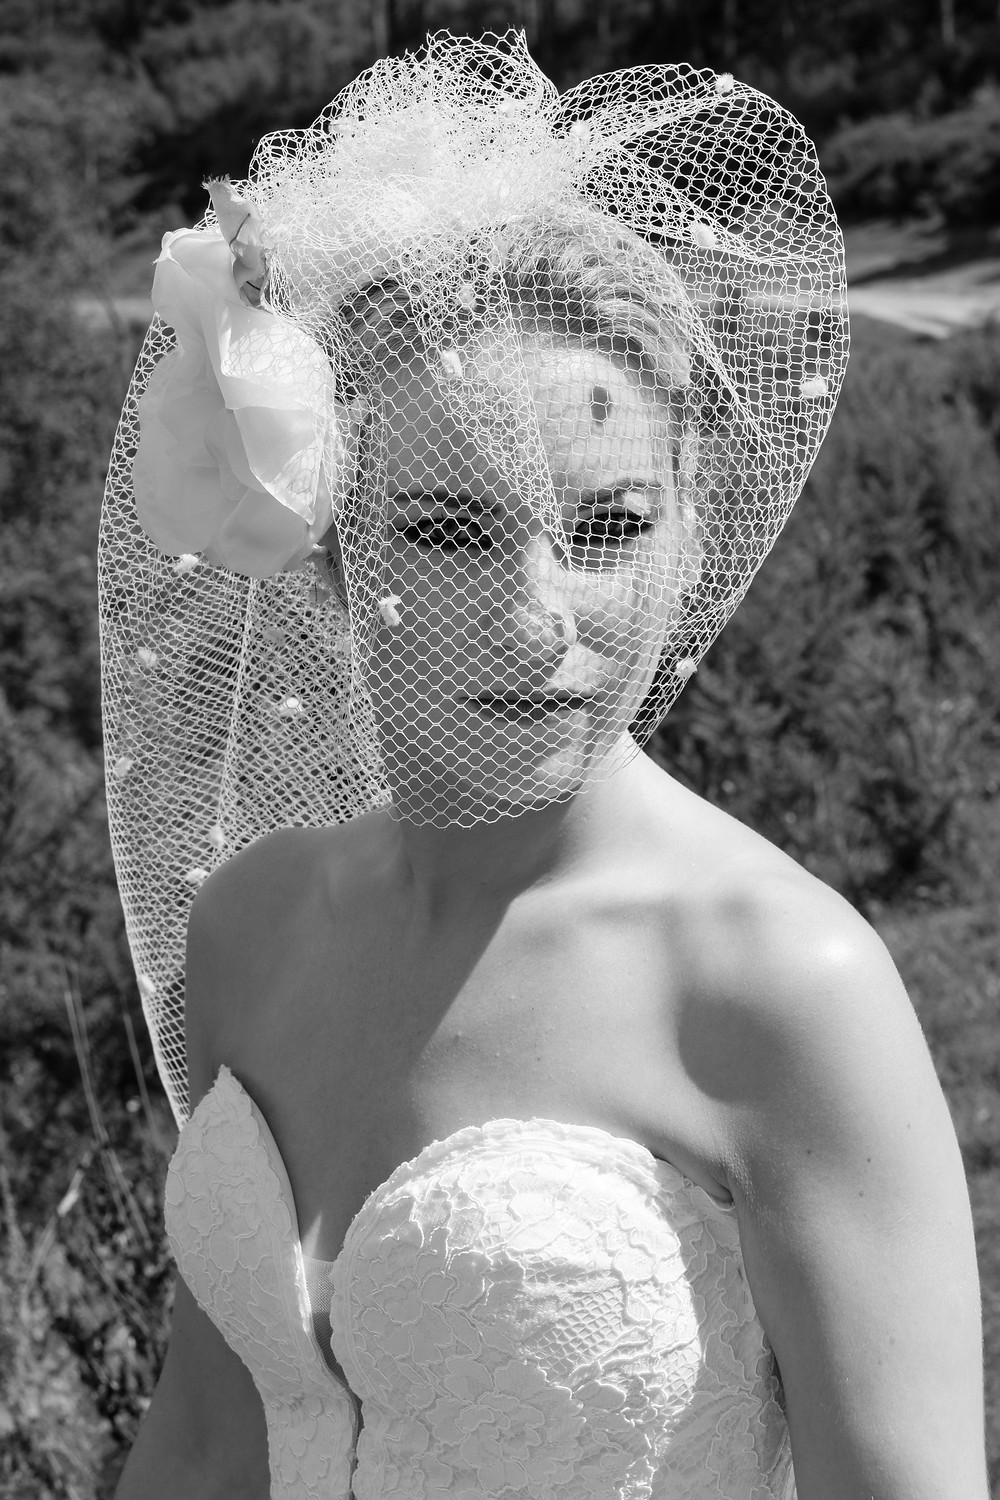 Birdcage Veil 'My Romance' by Irresistible Headdresses